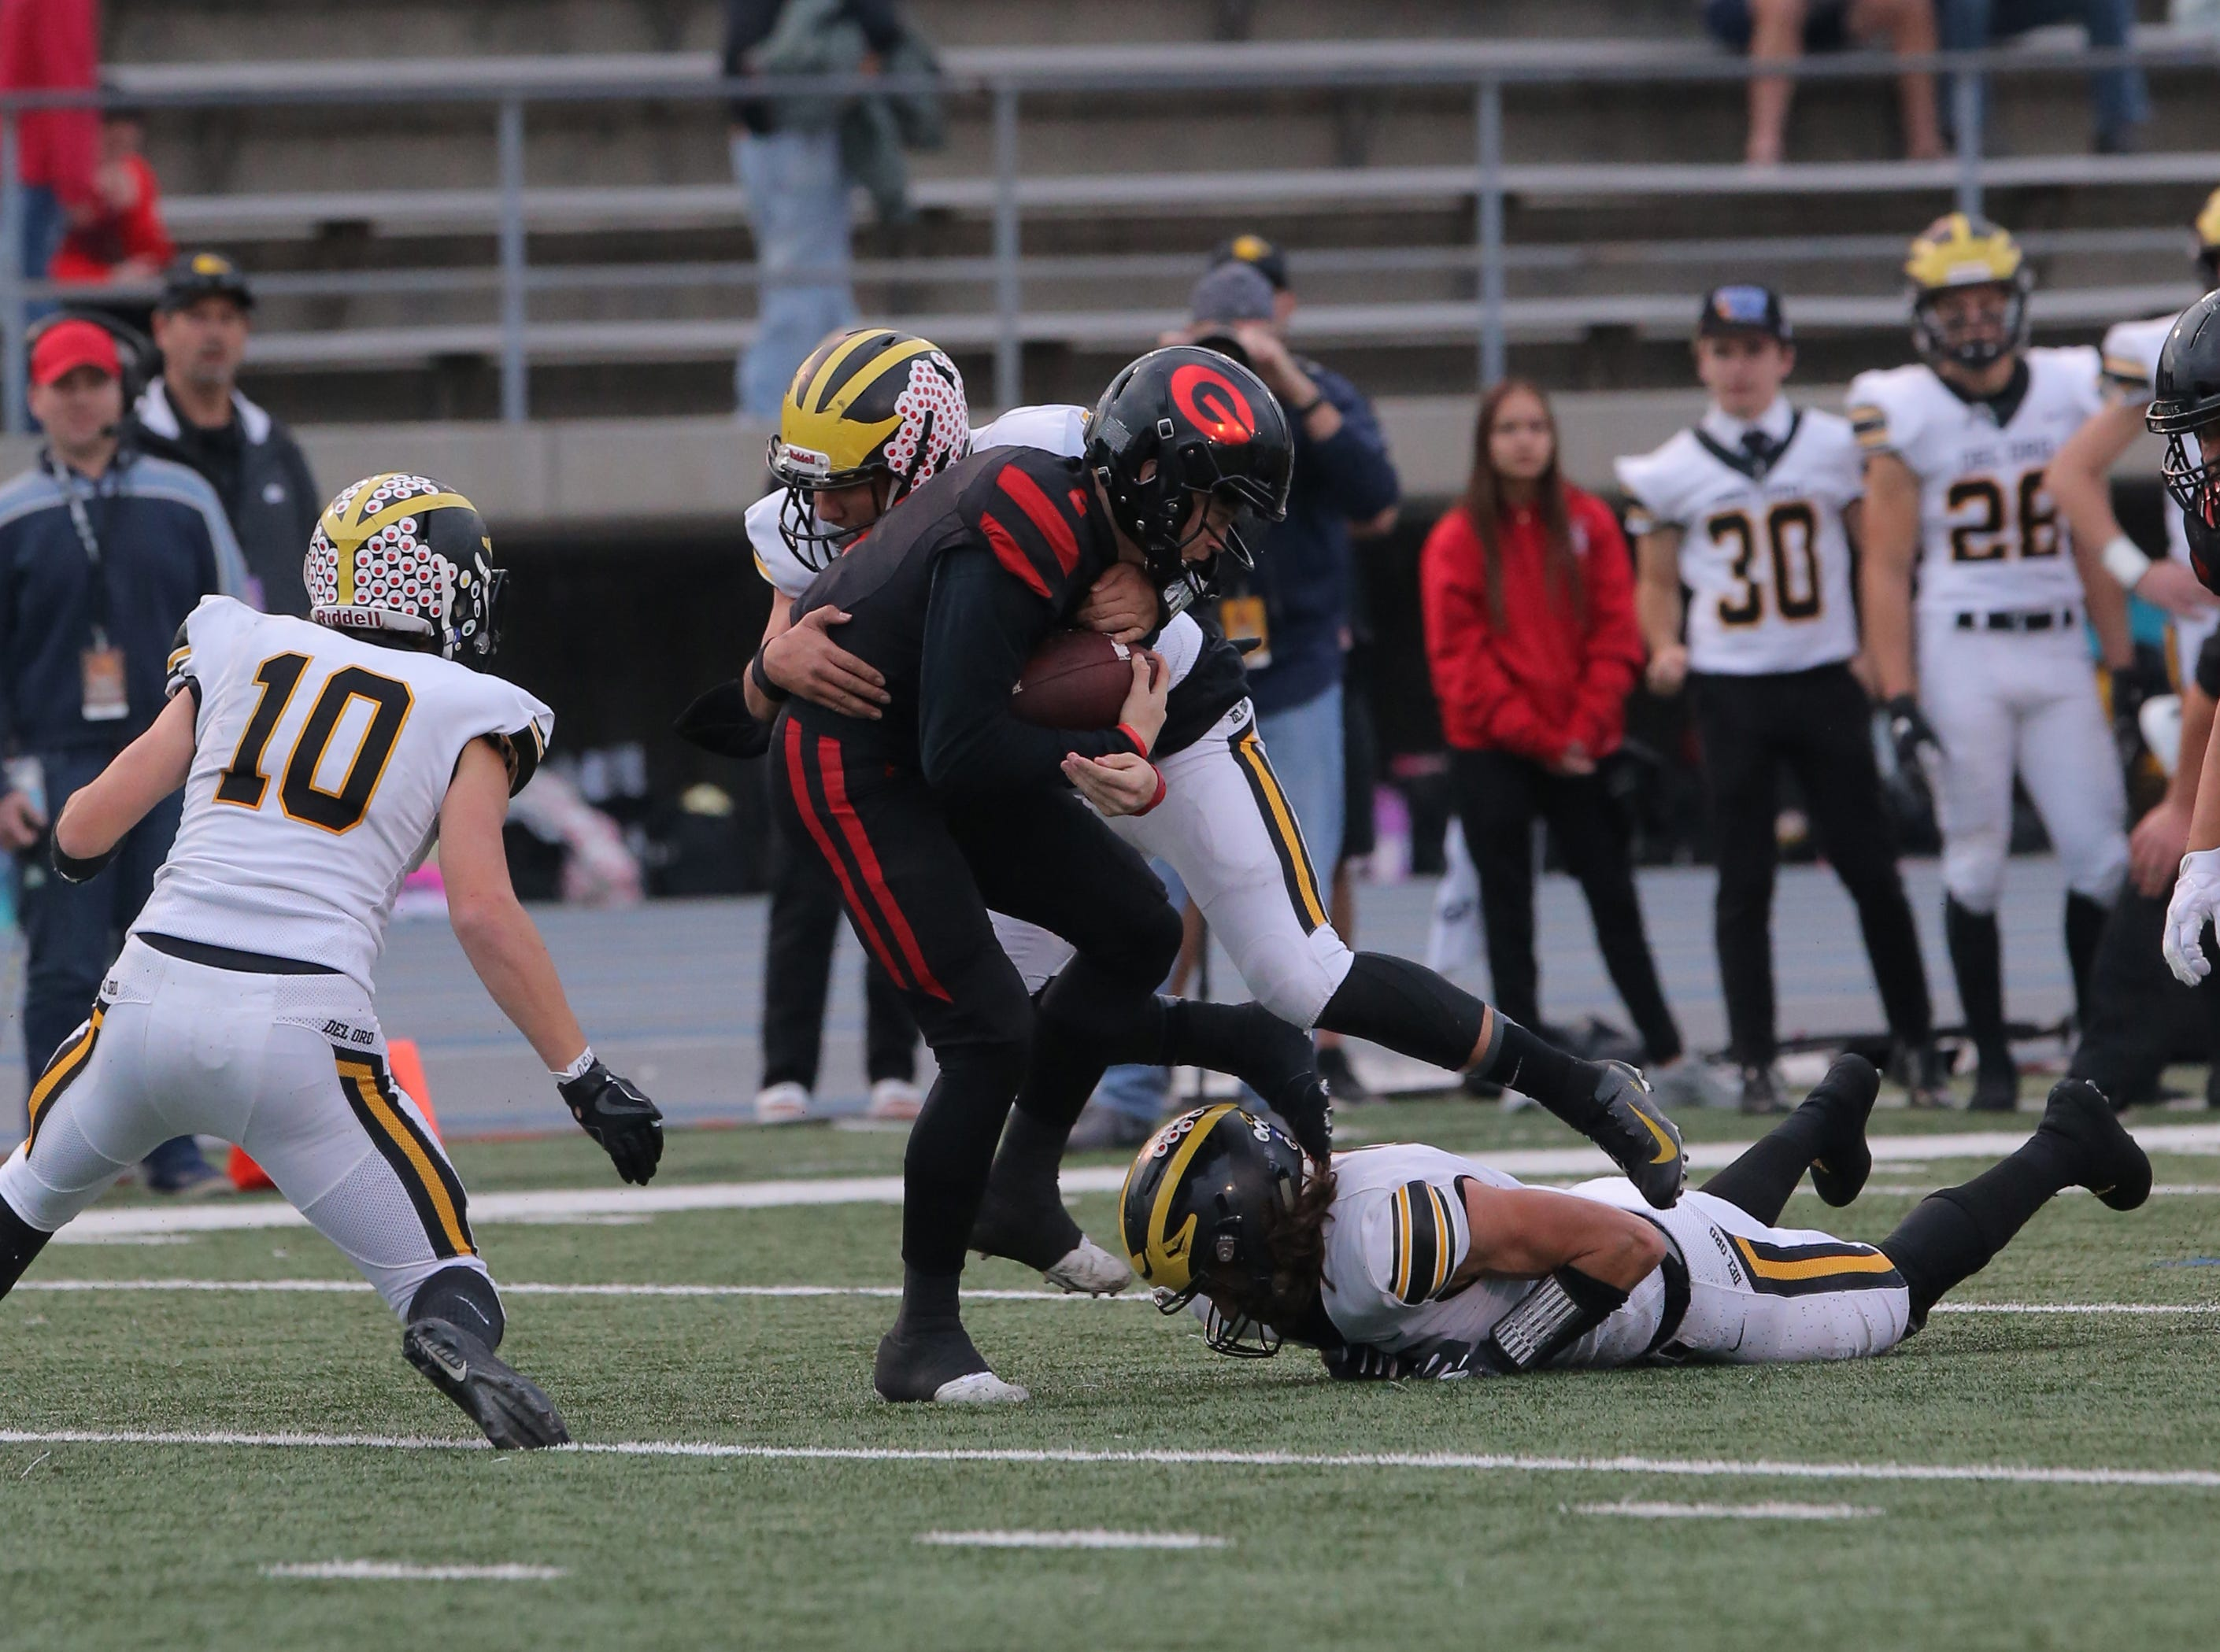 Grace Brethren quarterback Mikey Zele is surrounded by Del Oro defenders during the Division 2AA state championship game Friday at Cerritos College. The Lancers won, 21-14.